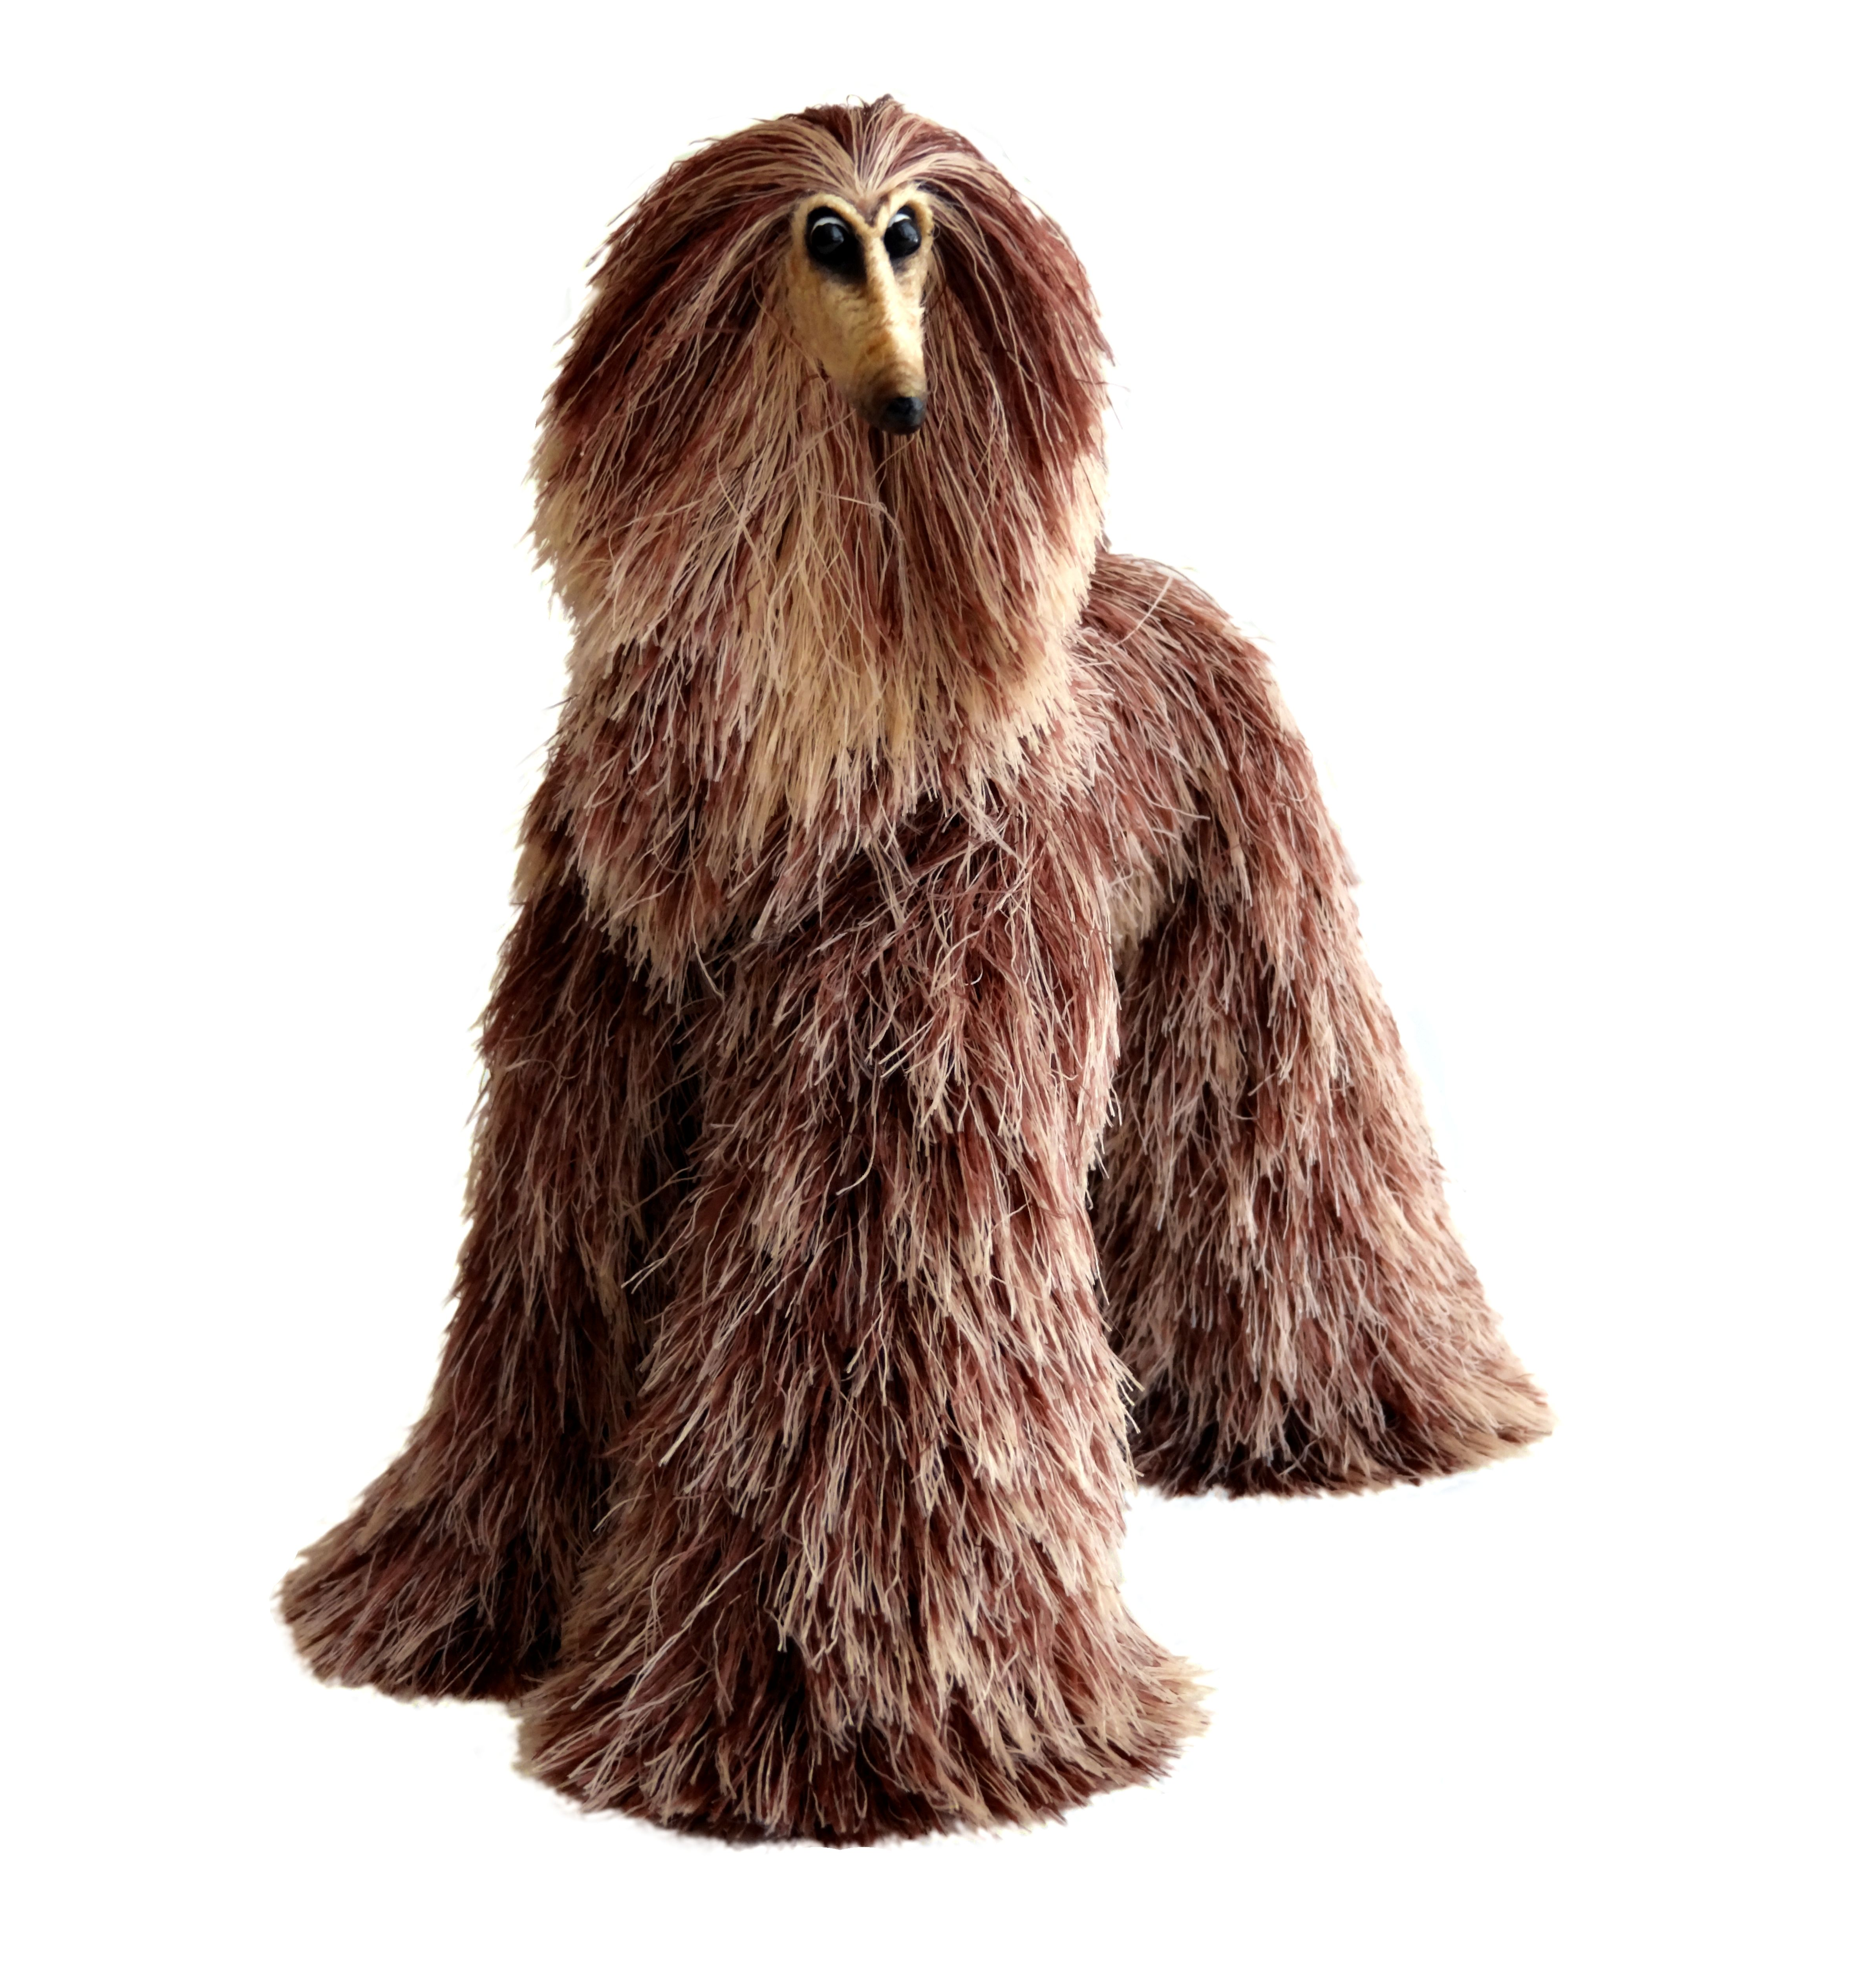 Details About Collectibles Animals Brown Beige Afghan Hound Cute Plush Mini Toy Stuffed Animal Cute Plush Pet Toys Miniature Dogs